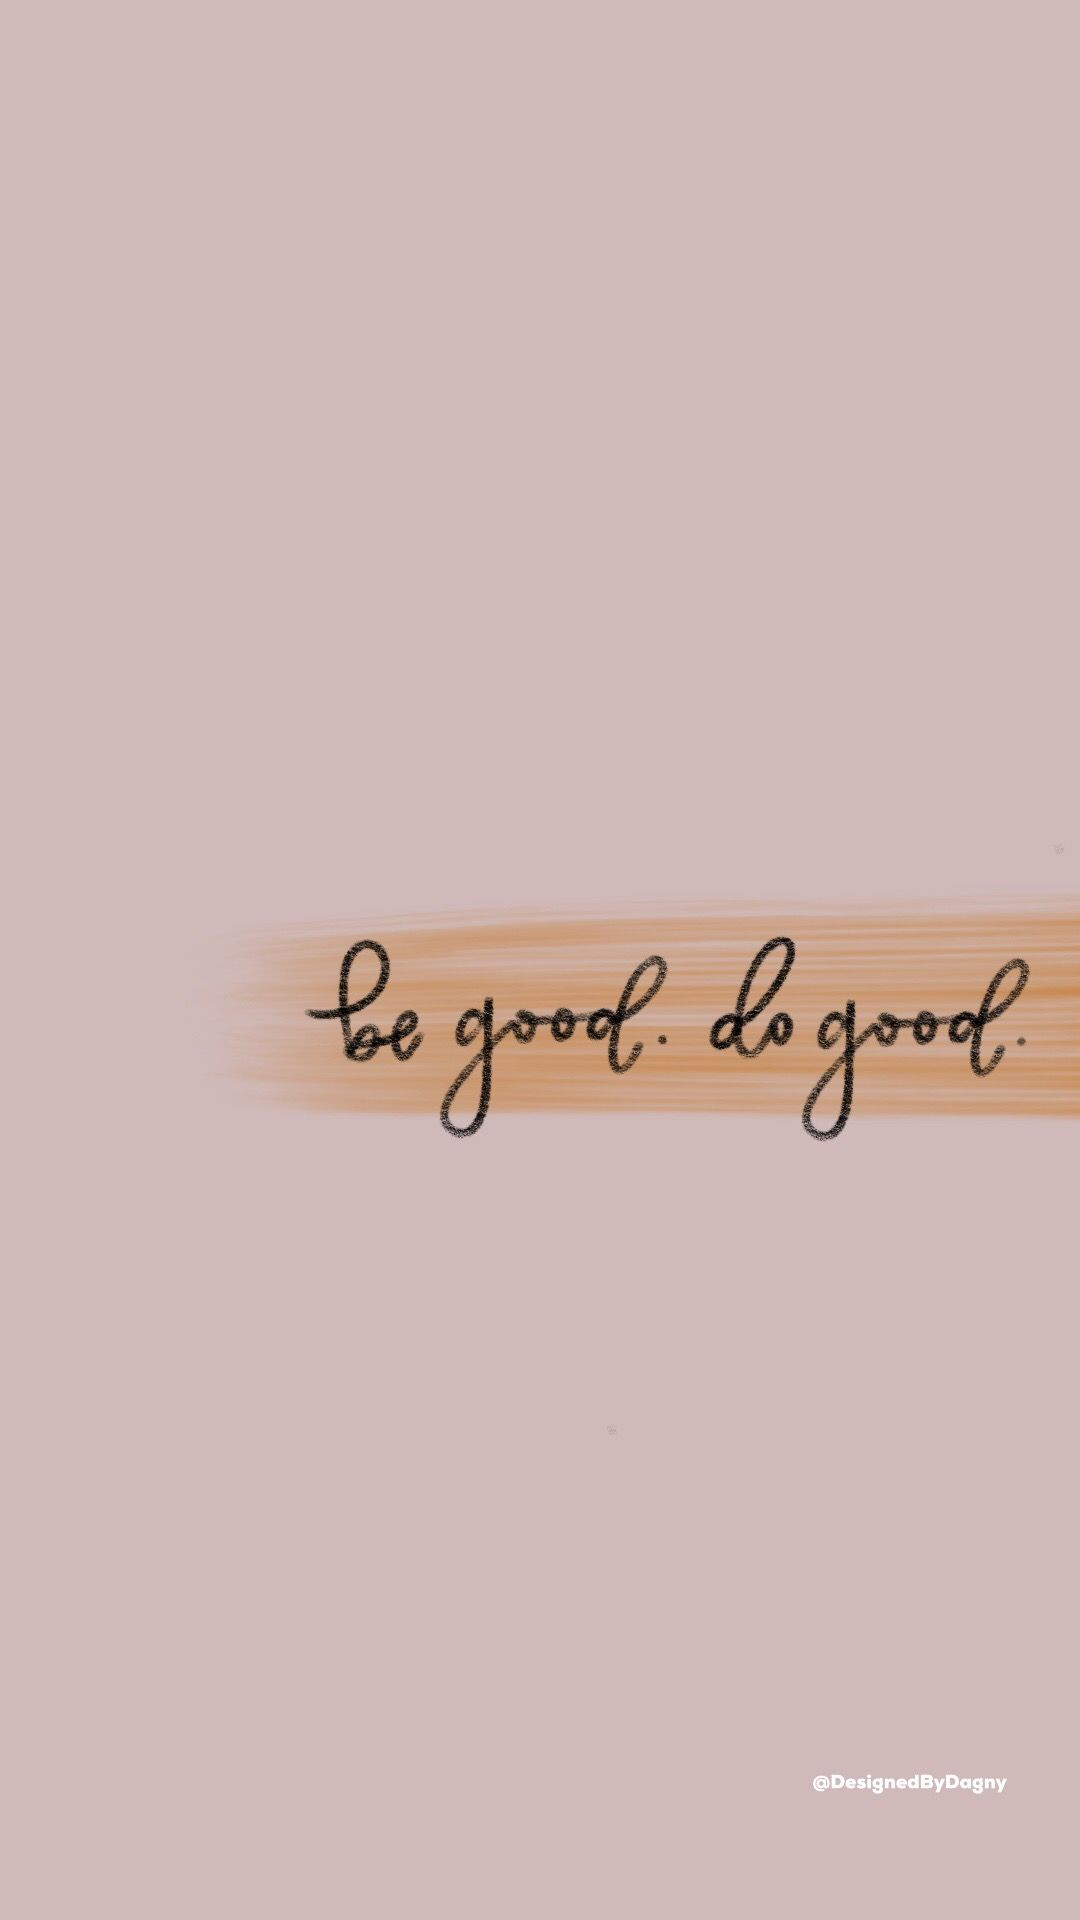 Do Good Be Good Iphone Wallpaper Cell Phone Wallpaper Phone Background Phone Wallpaper Iphone Background In 2021 Motivational Quotes Wallpaper Wallpaper Iphone Quotes Wallpaper Quotes